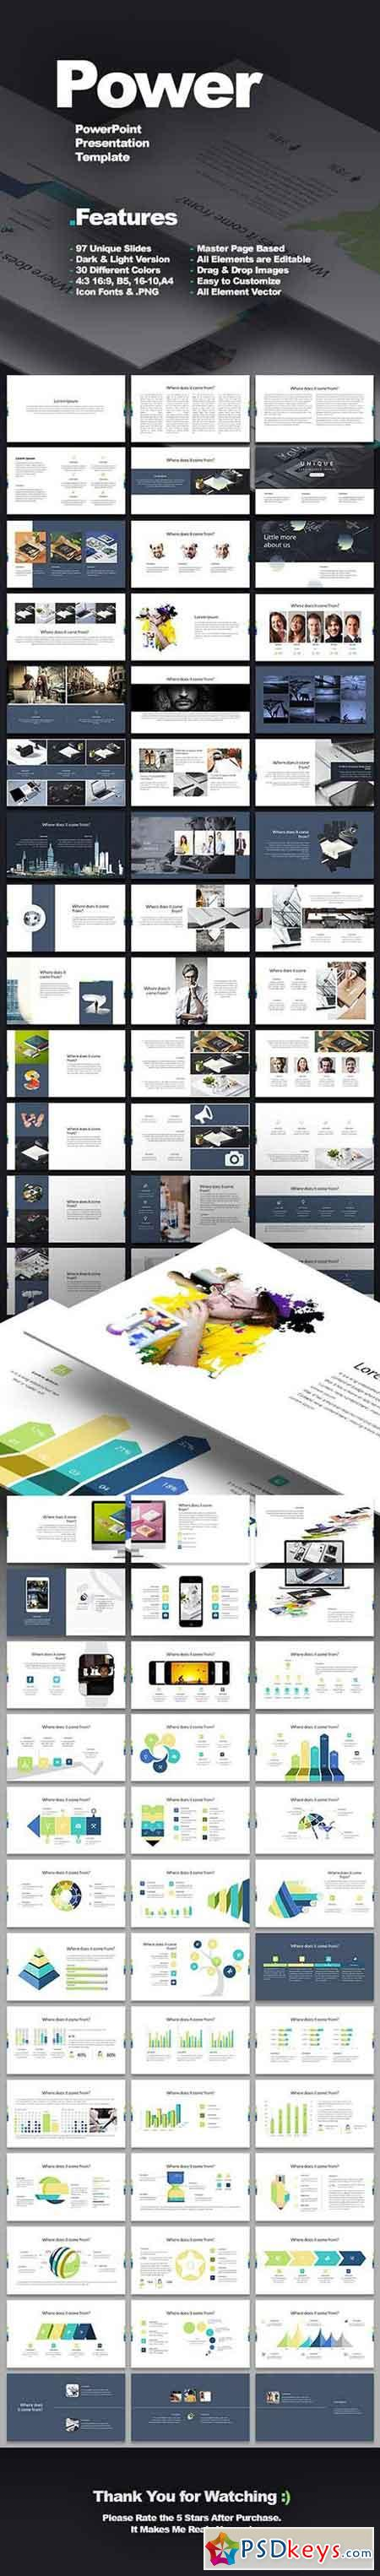 Power presentation template 1236575